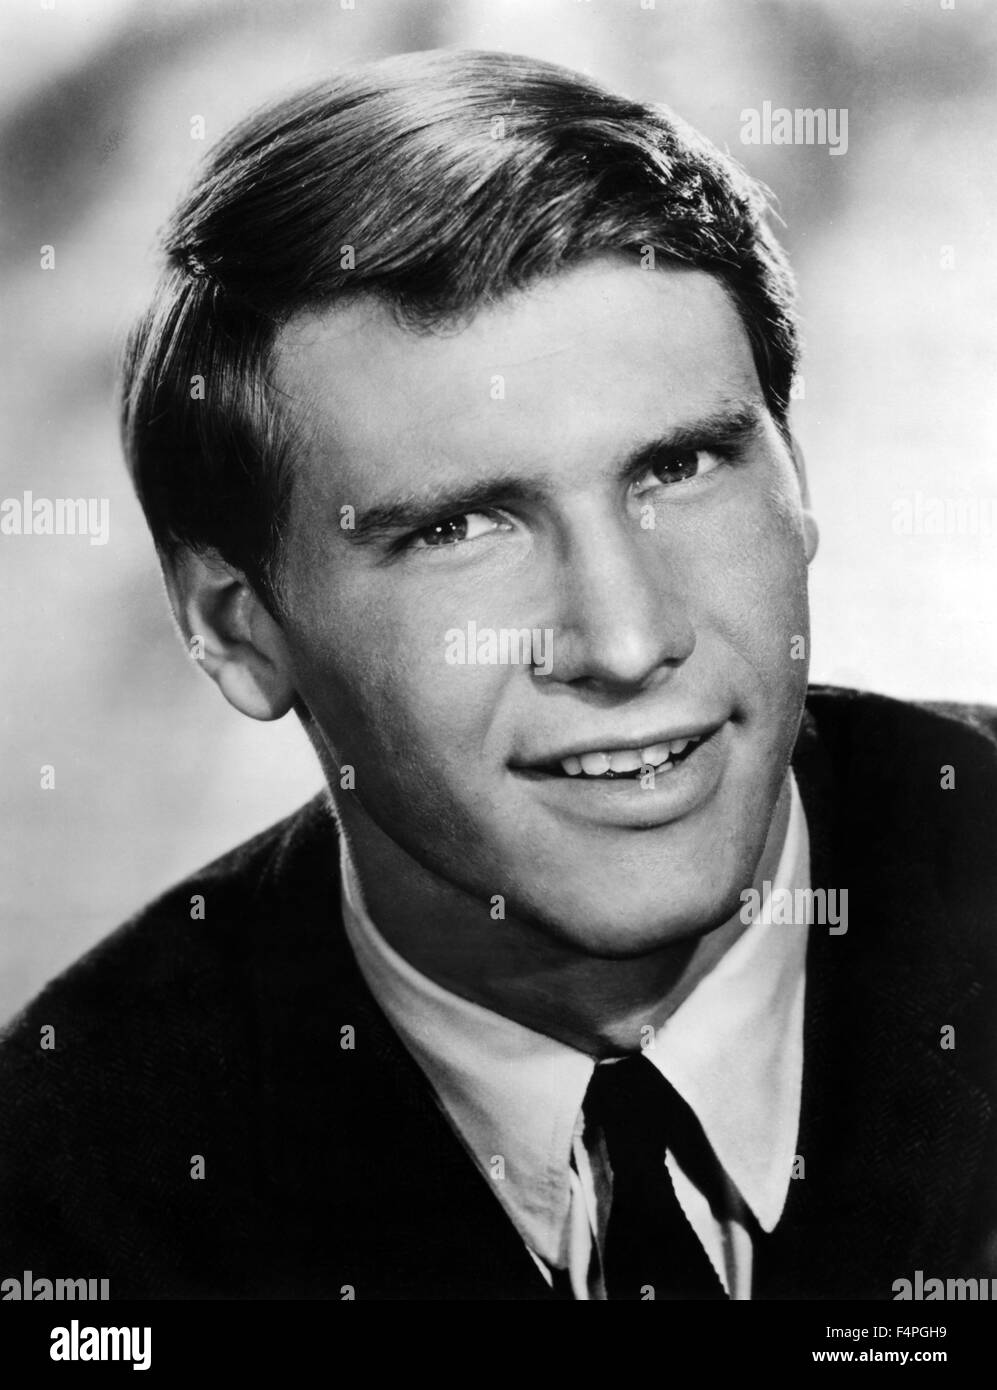 Harrison Ford / Portrait early 70's - Stock Image